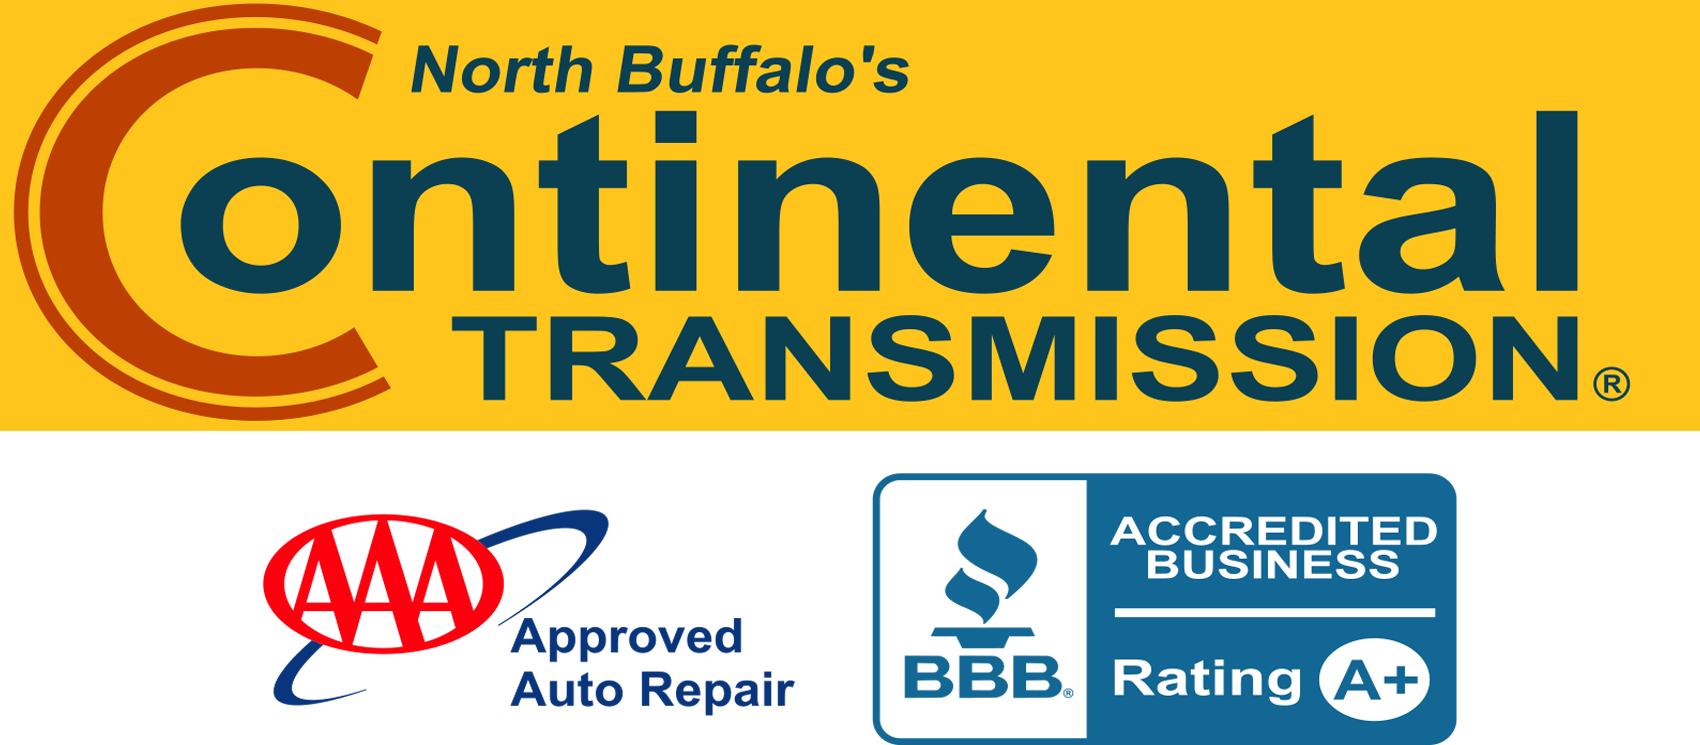 North Buffalo's Continental Transmission